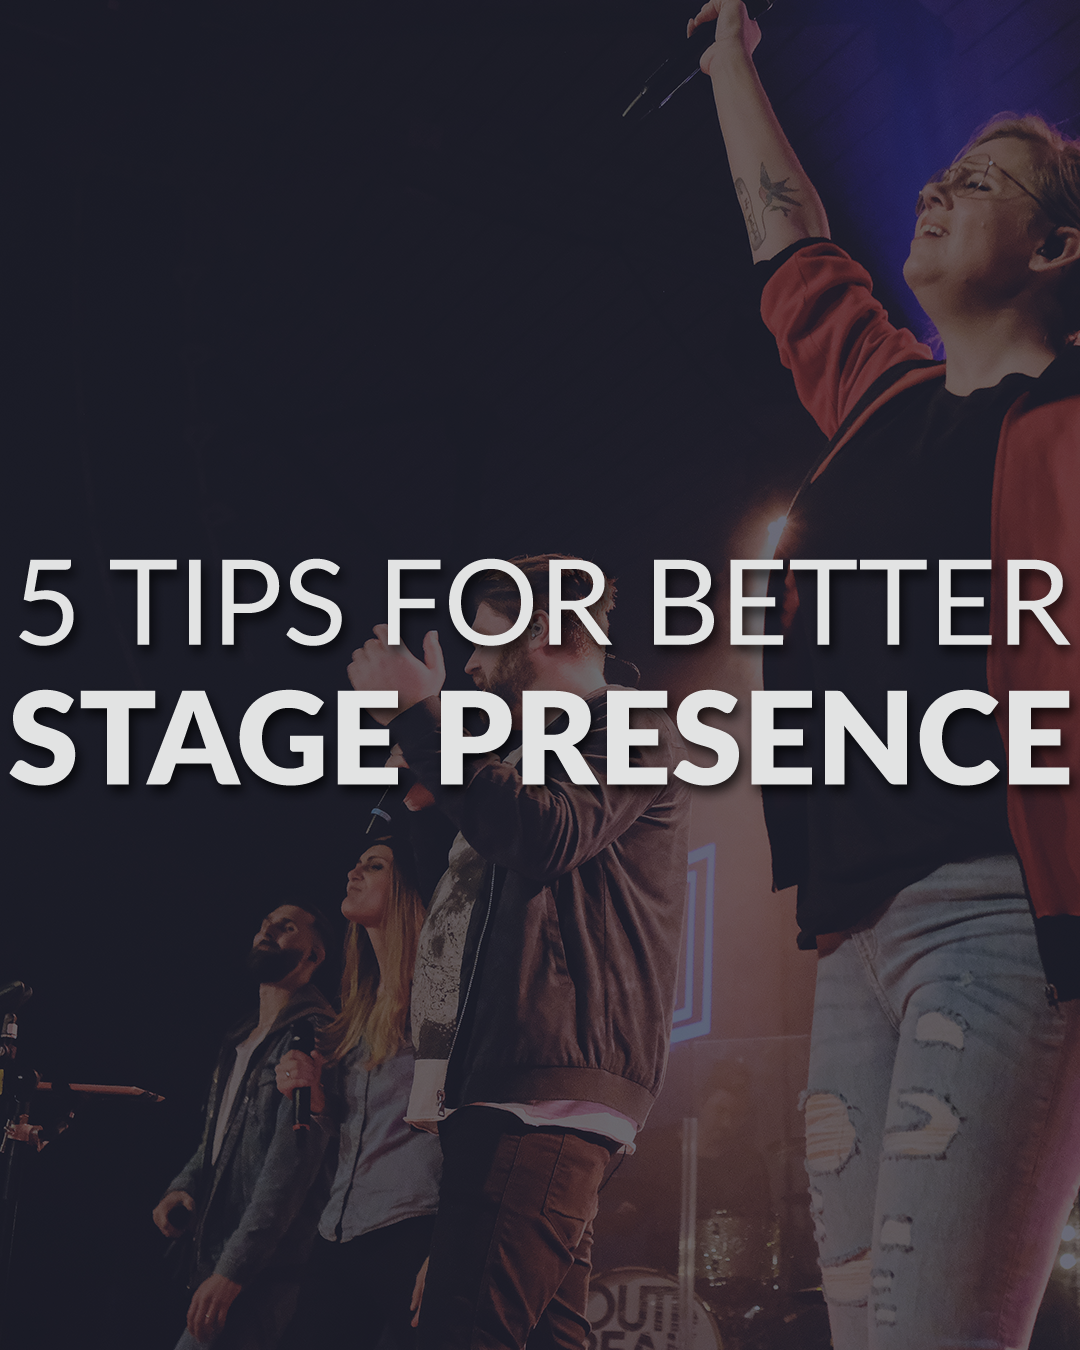 Better stage presence while leading worship